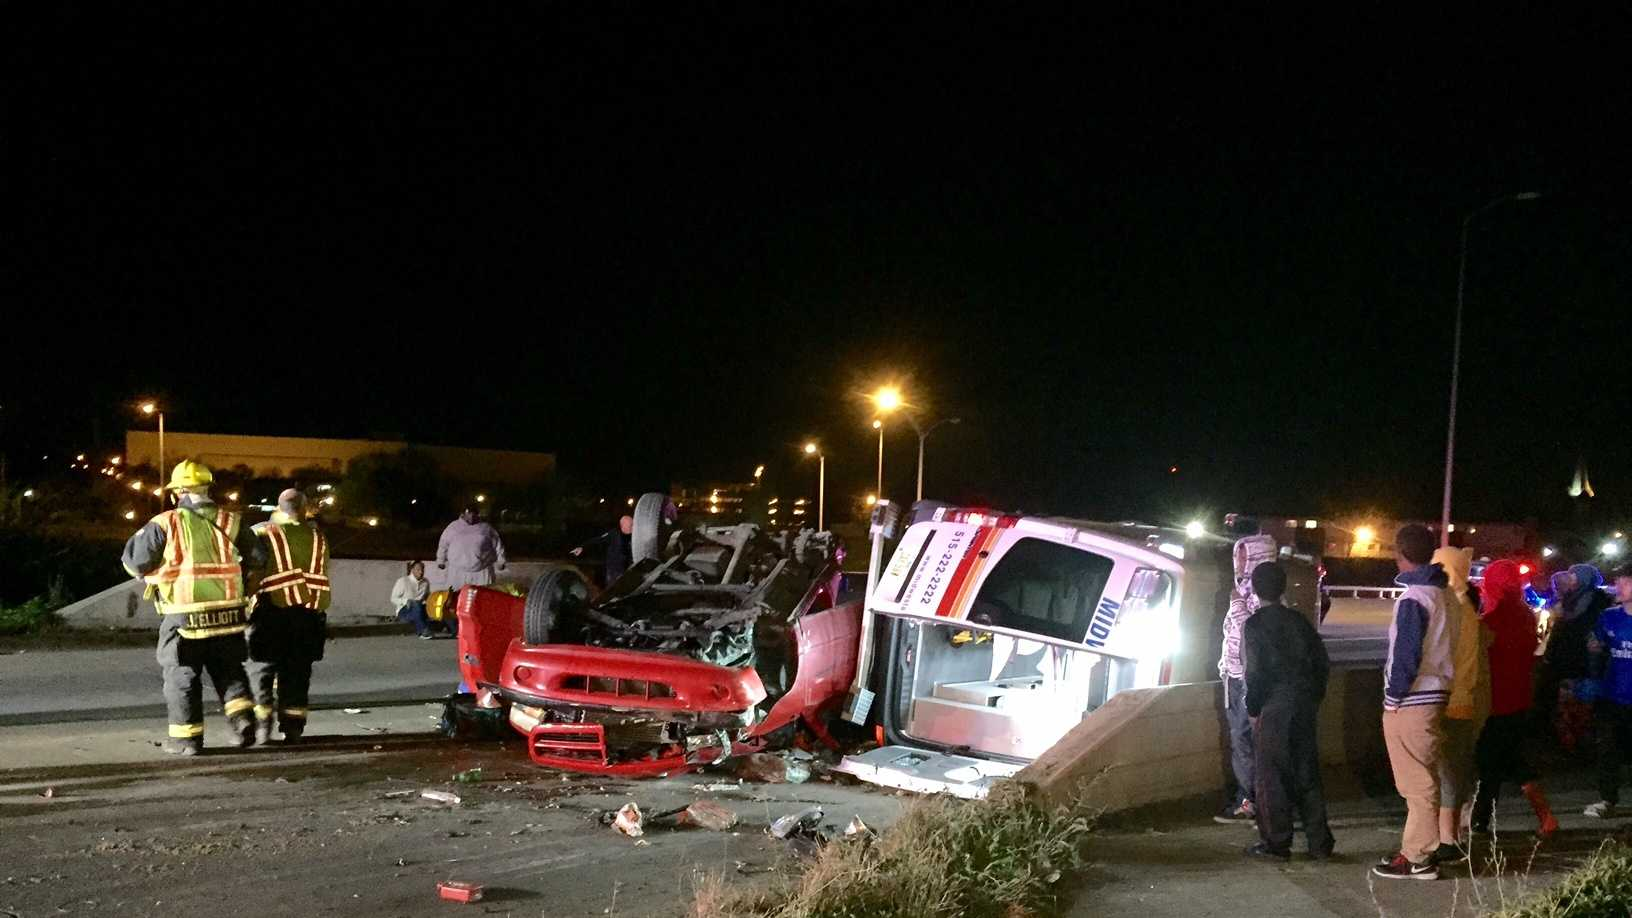 One person critically injured after a collision causes an ambulance to rollover.